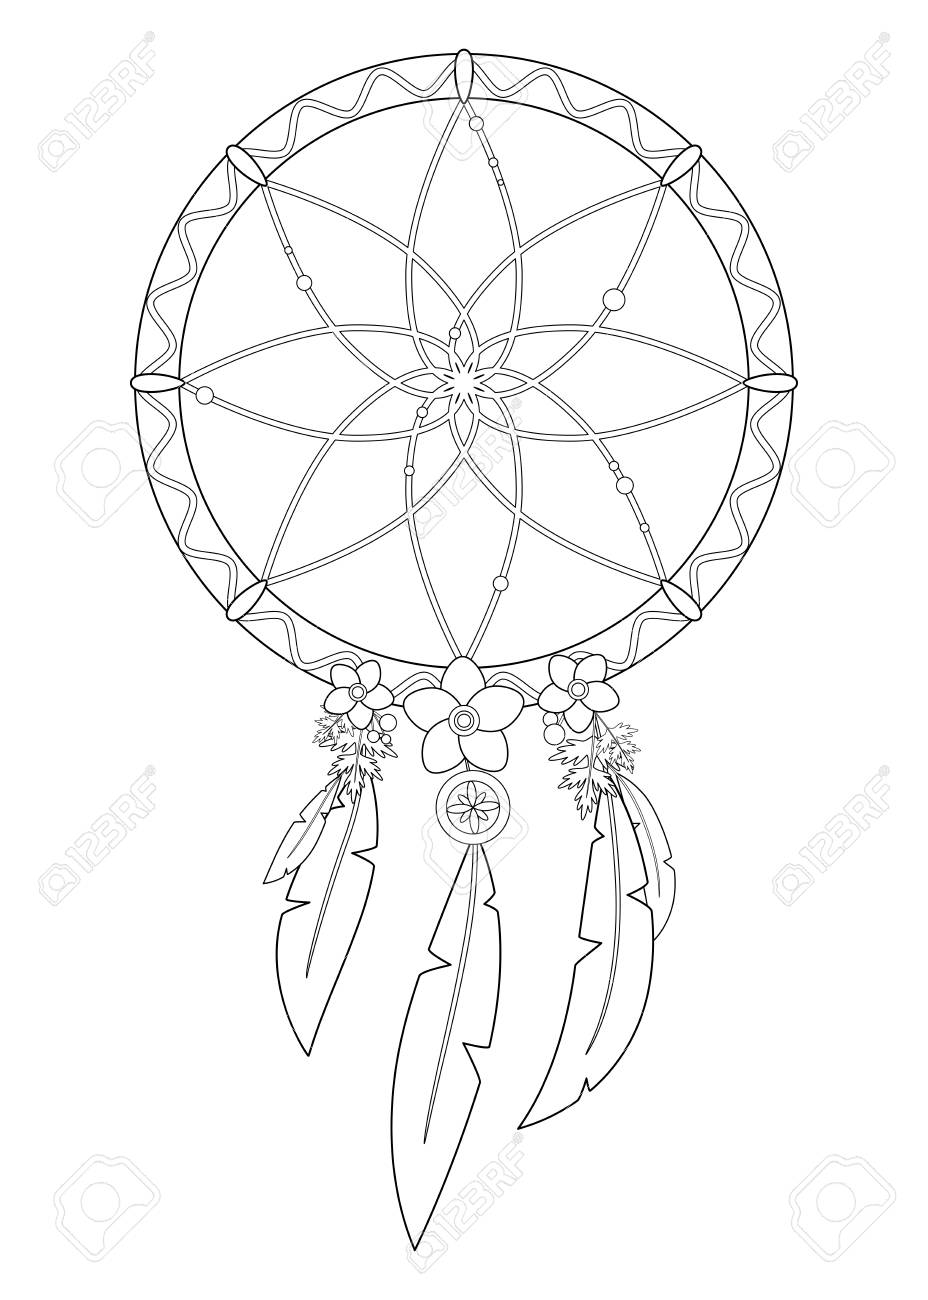 Outline Vector Illustration Of Boho Dreamcatcher Isolated On